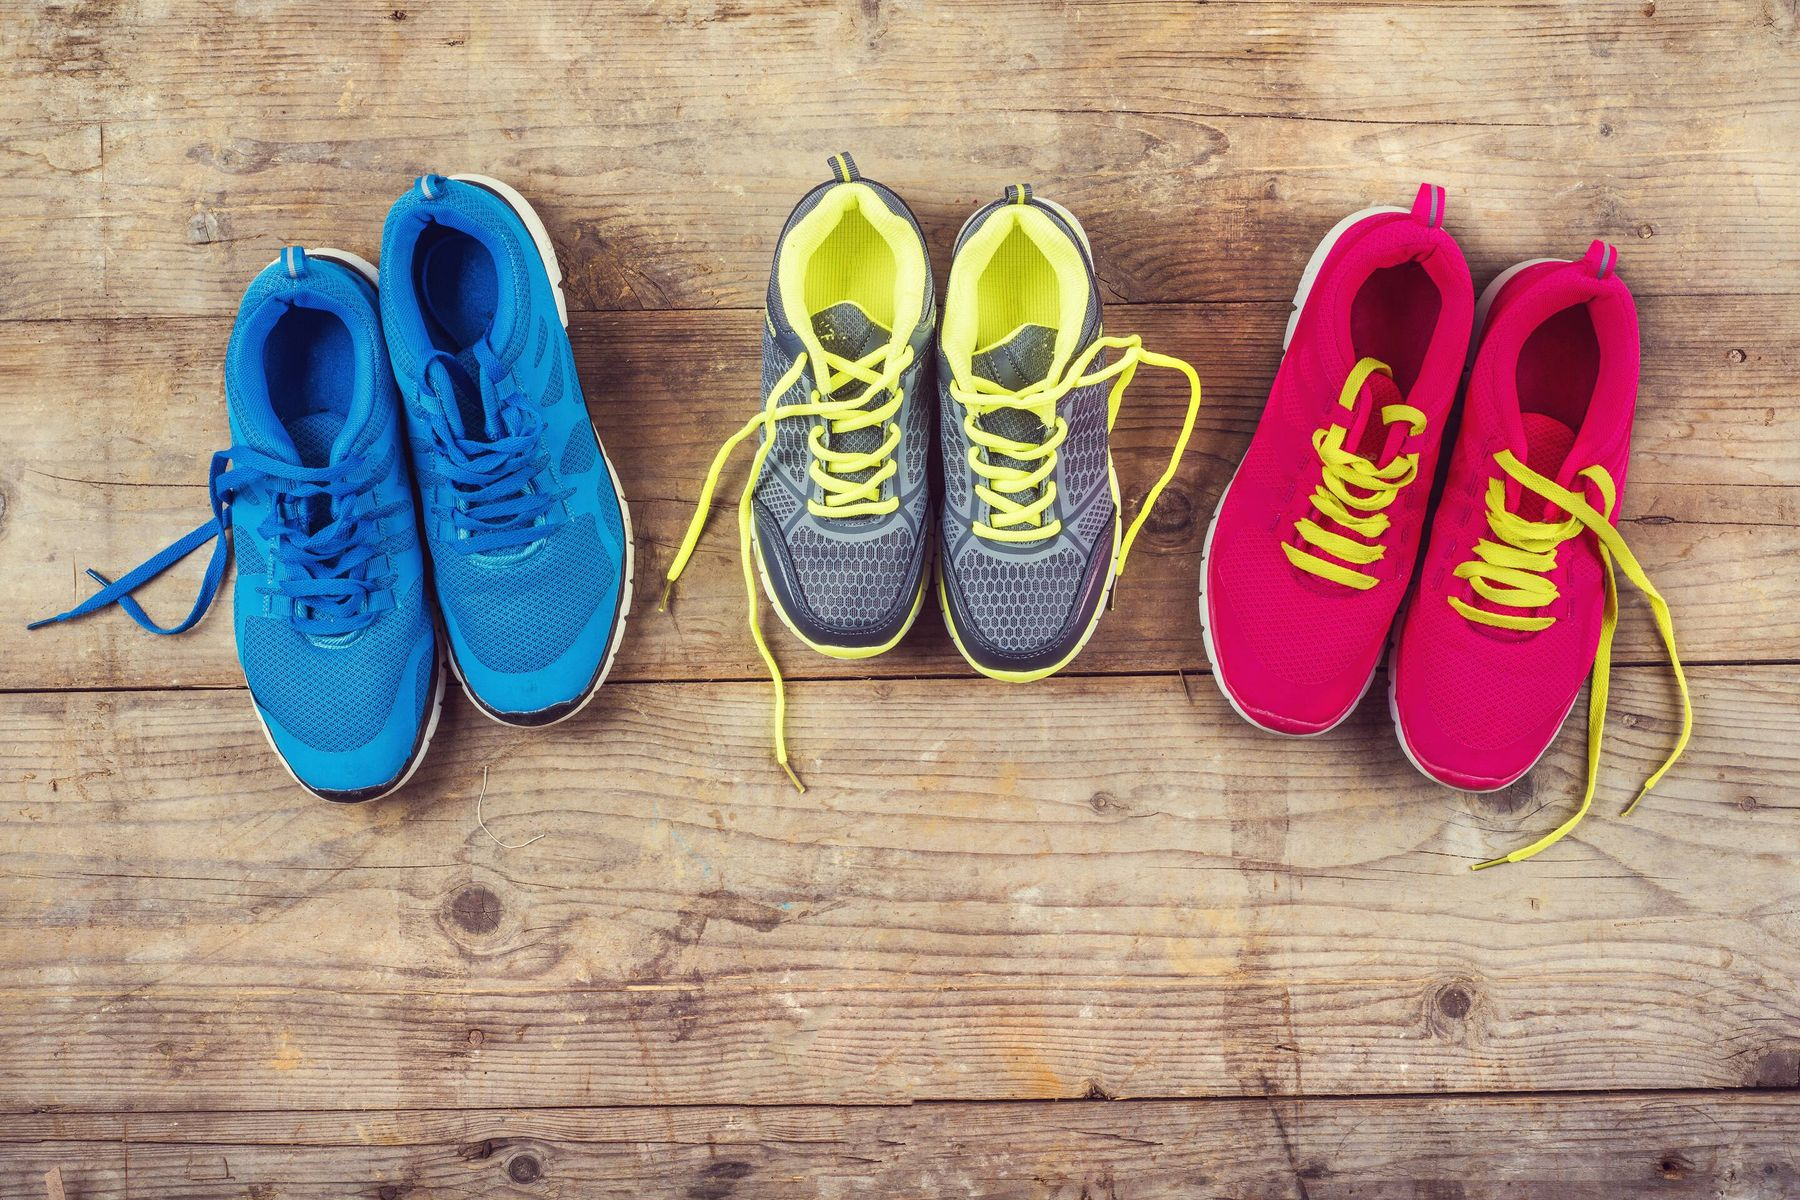 Tips to Keep Your Sports Shoes Smelling Great! - Cleanipedia